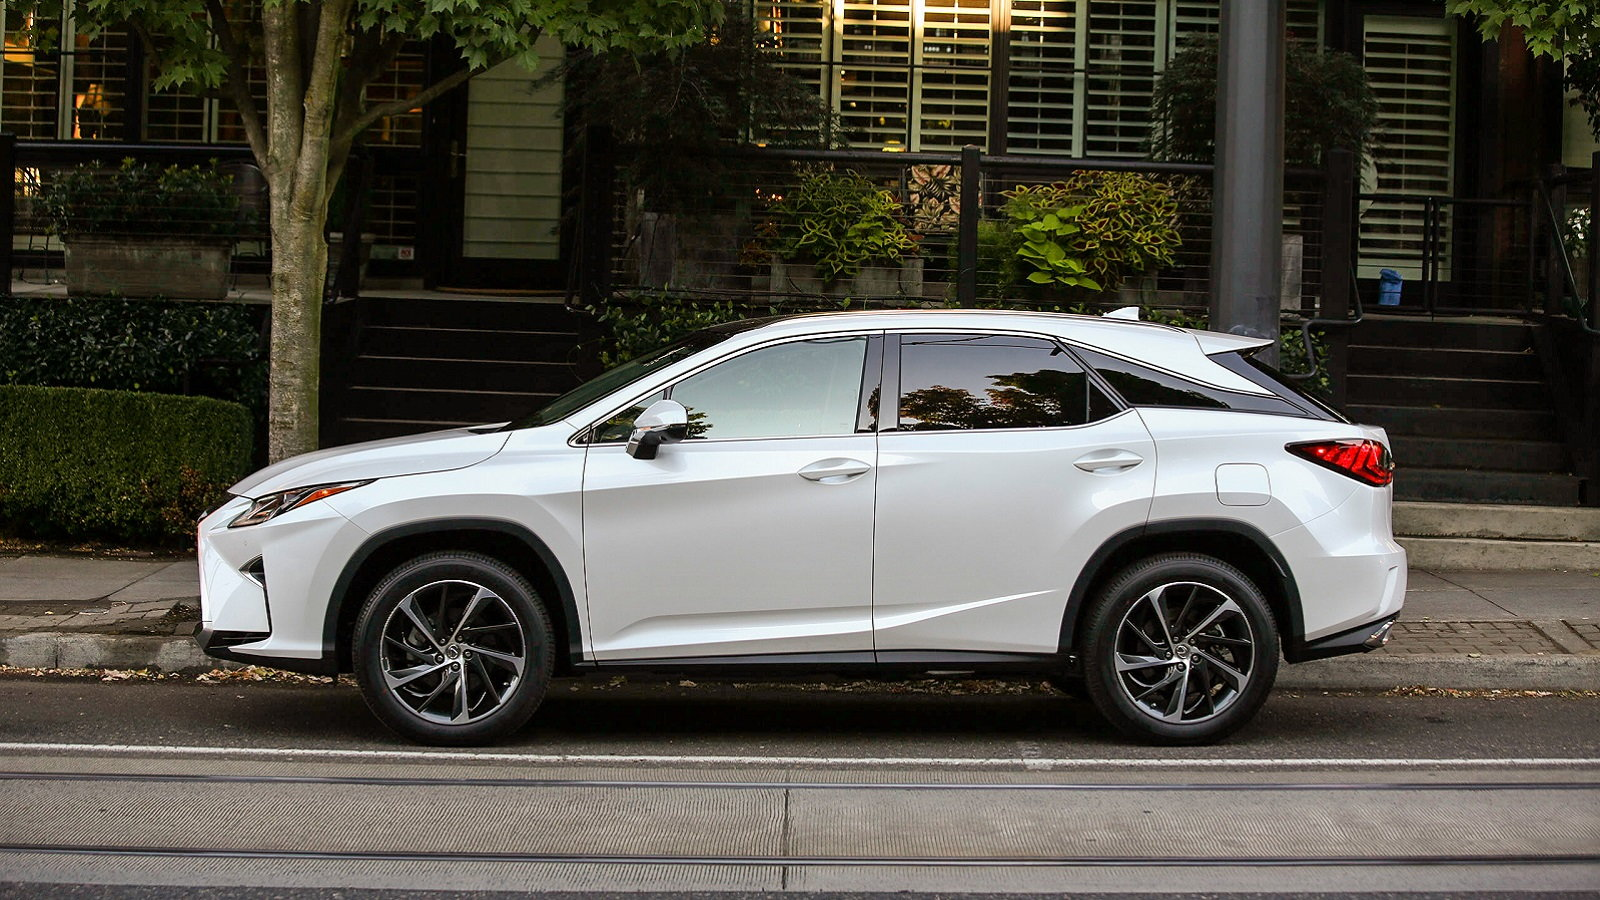 Lexus RX: Sexiest SUV Currently on the Market?